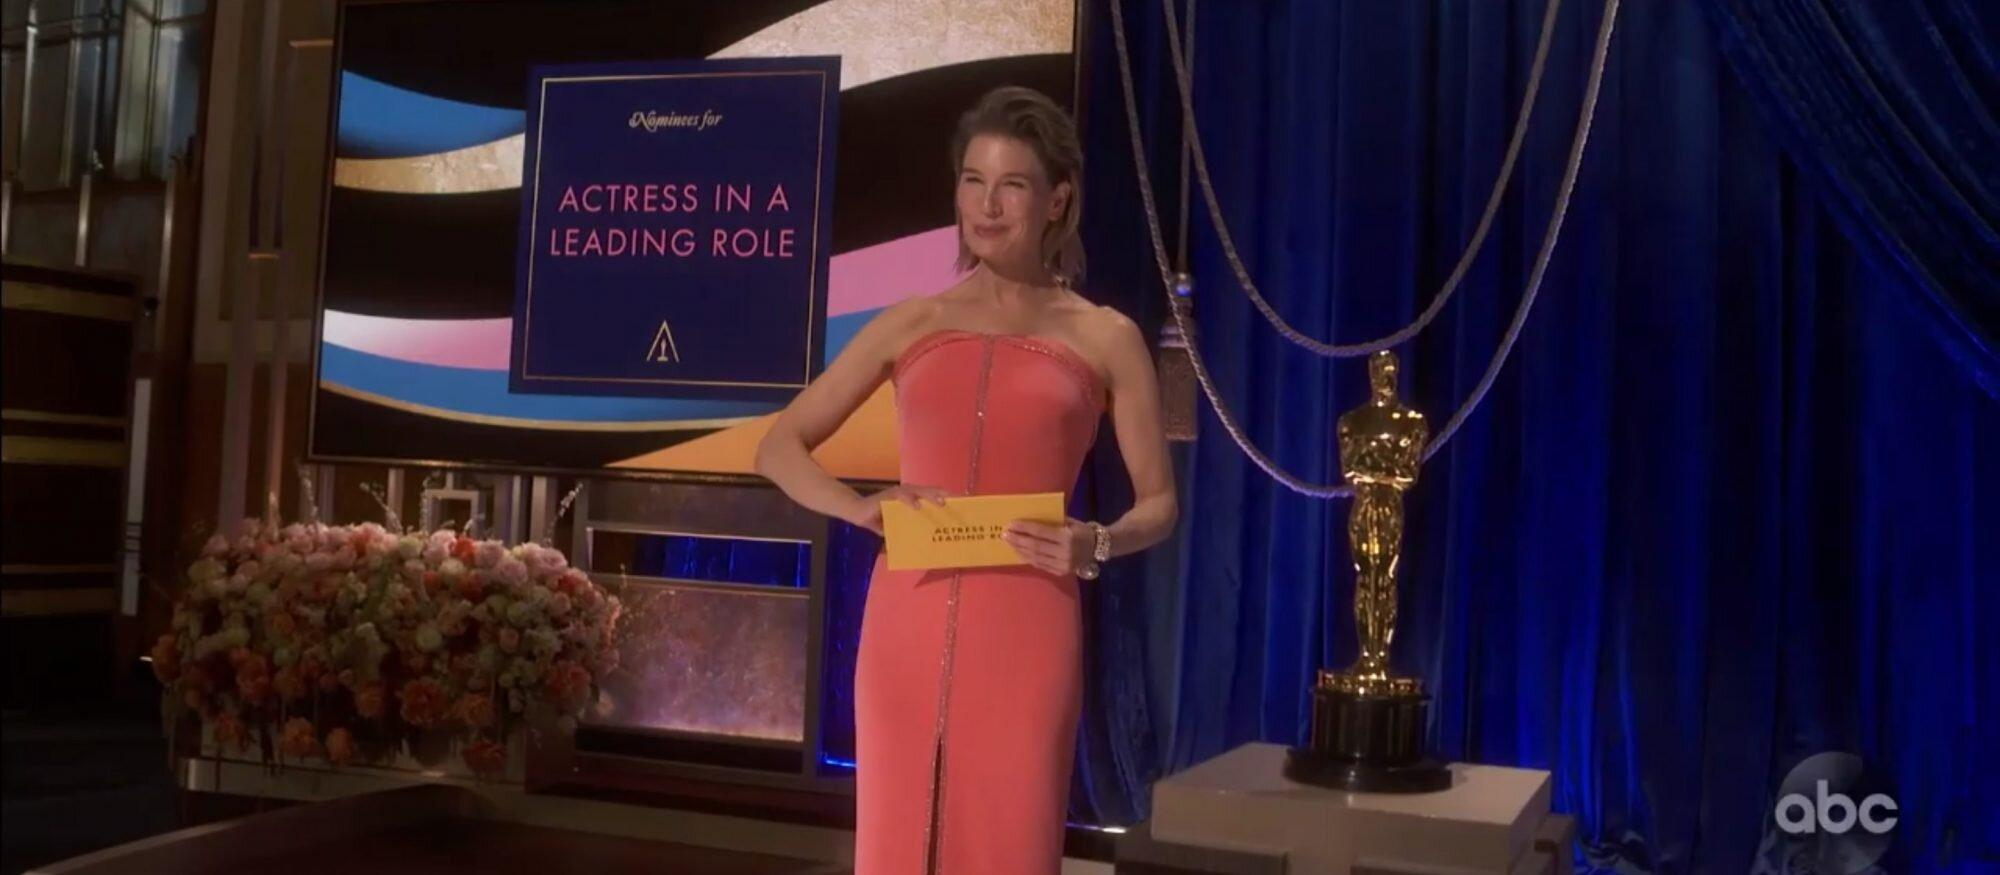 Renée Zellweger Returns to the 2021 Oscars Stage in an Elegant Peony Pink  Gown